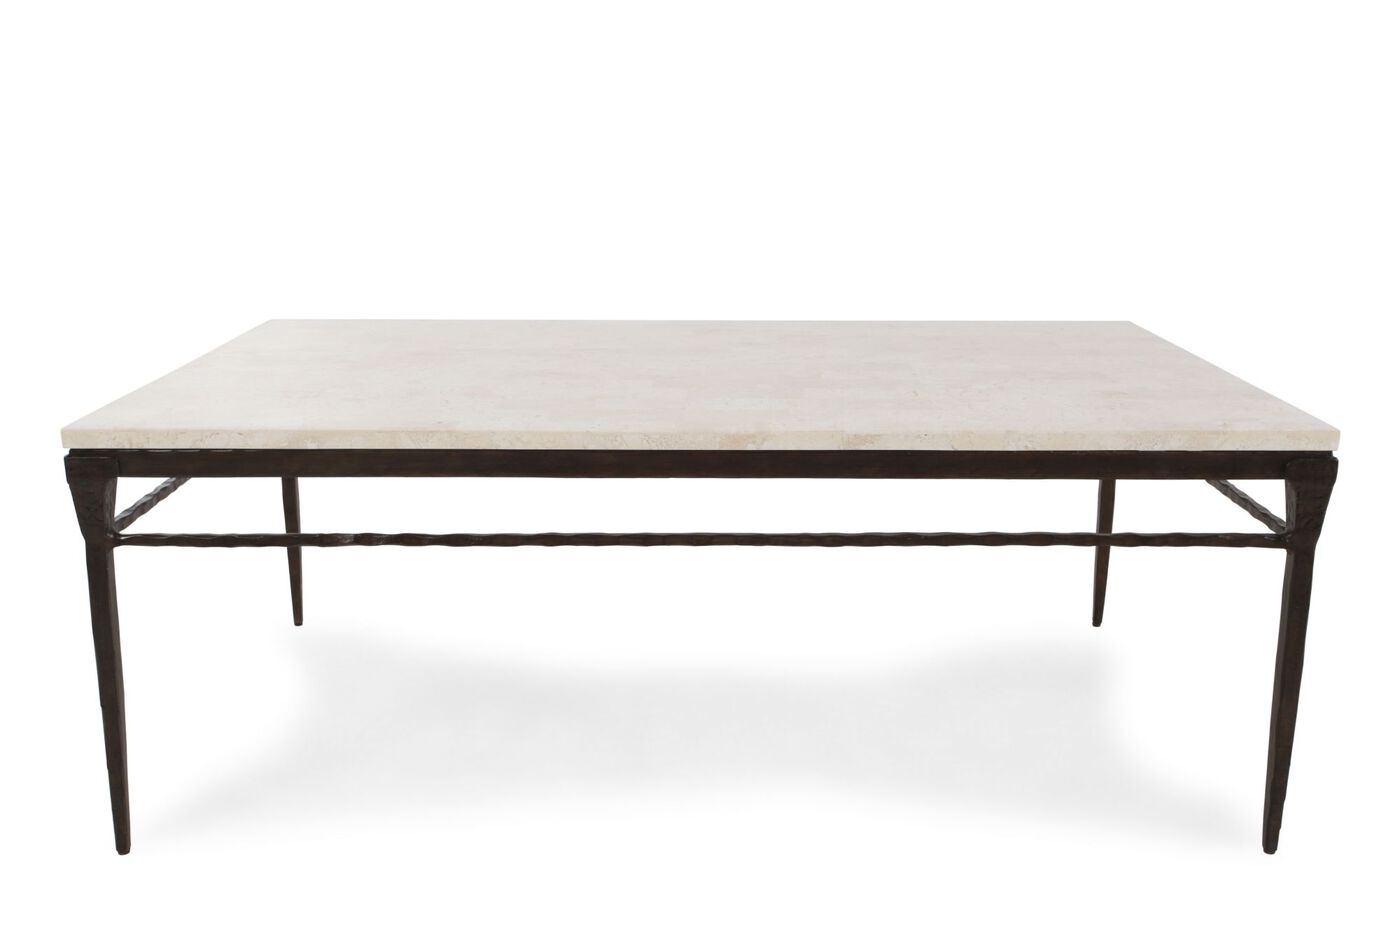 Bernhardt desmond cocktail table mathis brothers furniture Bernhardt coffee tables